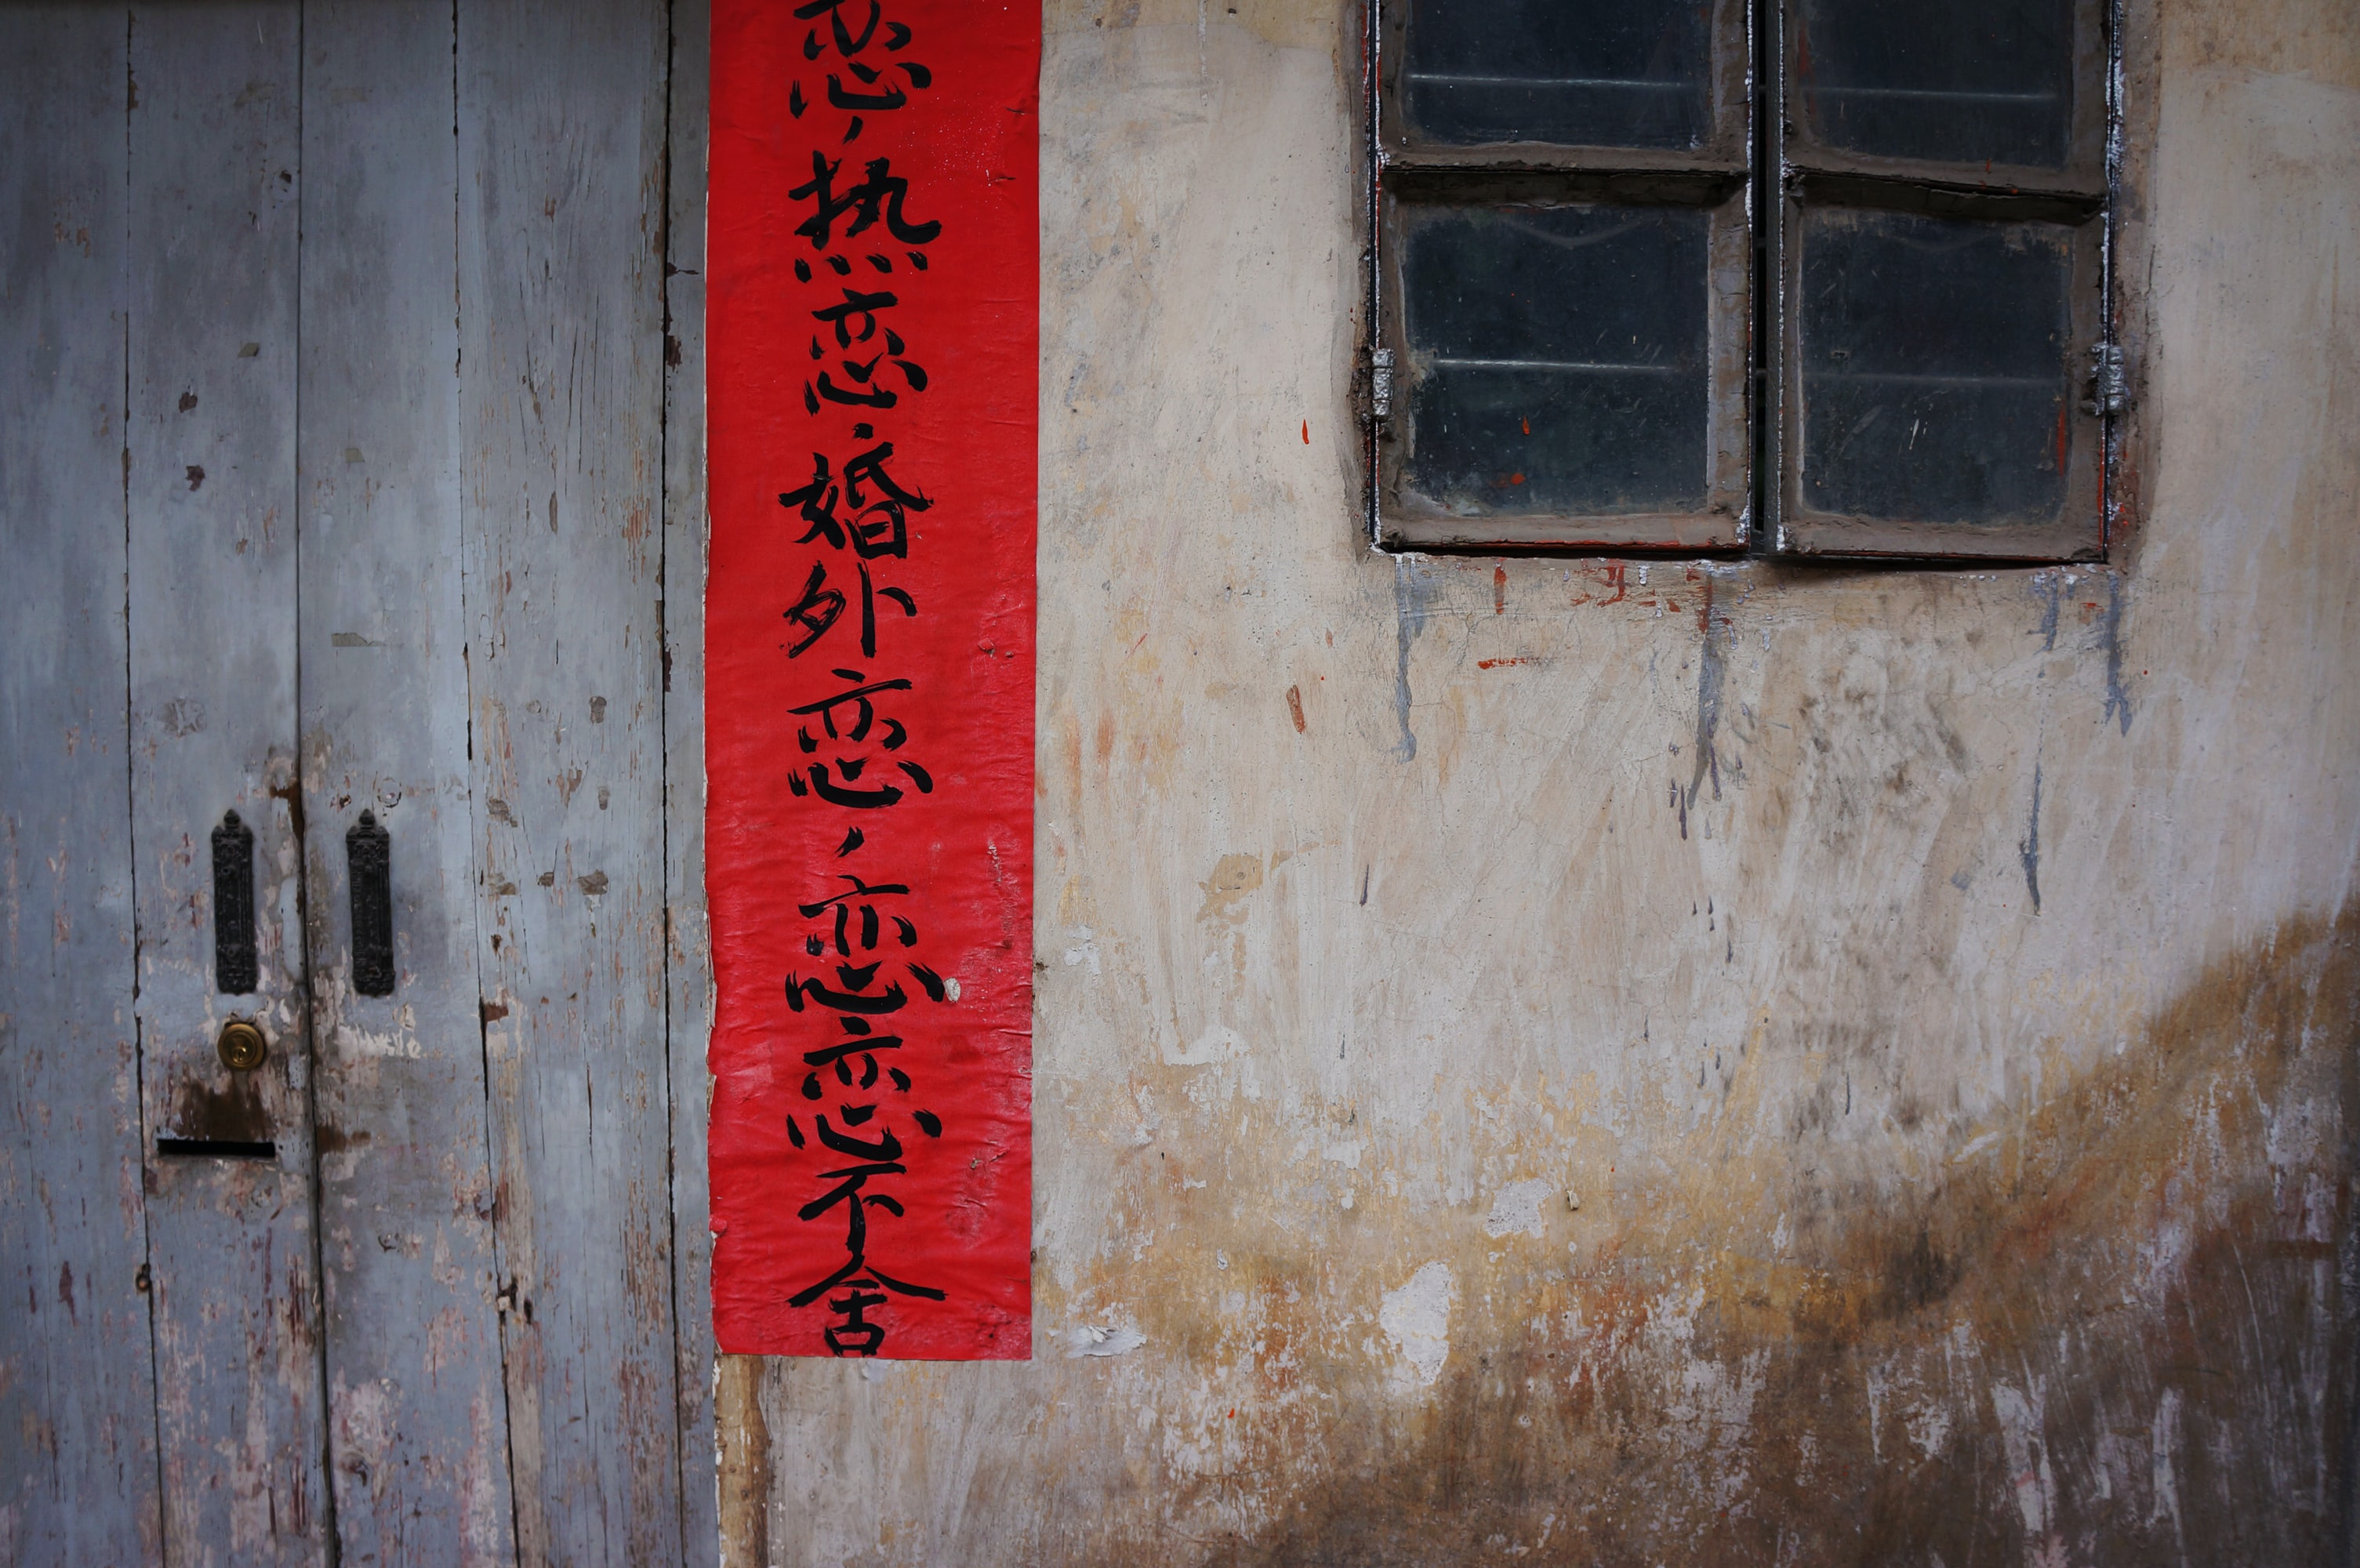 red signage near gray wooden door